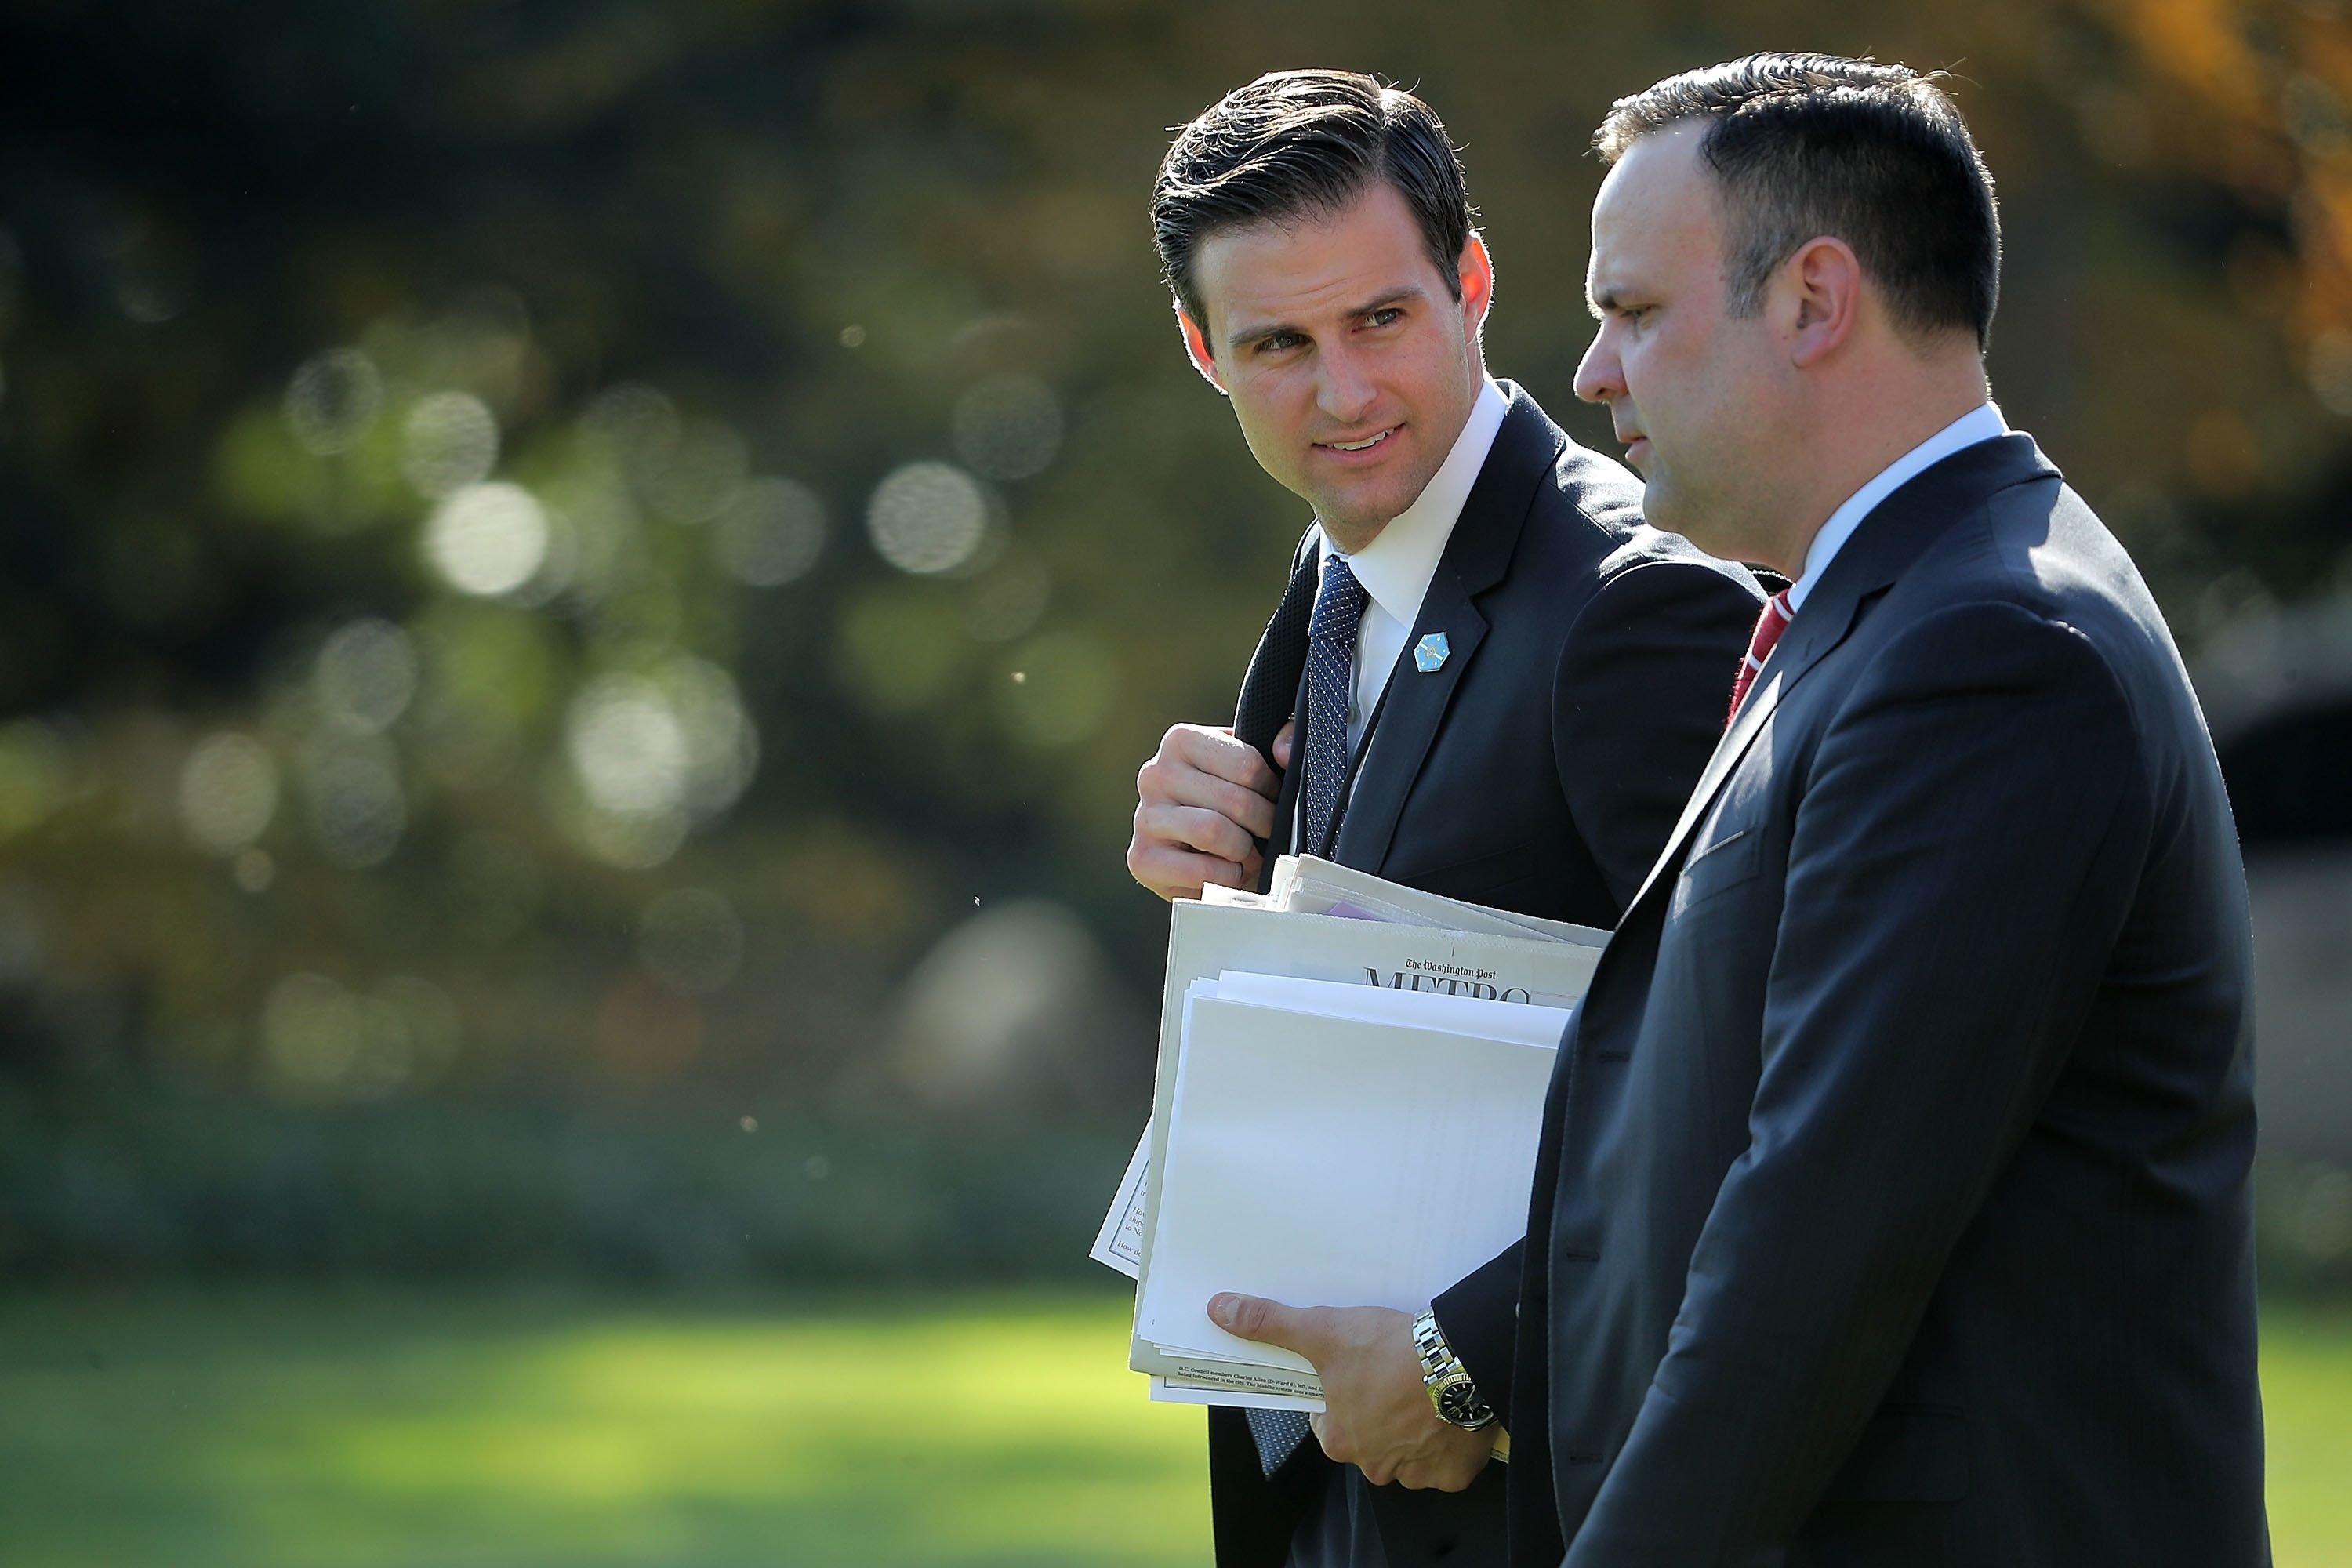 President Trump's personal aide fired, escorted from White House without getting coat